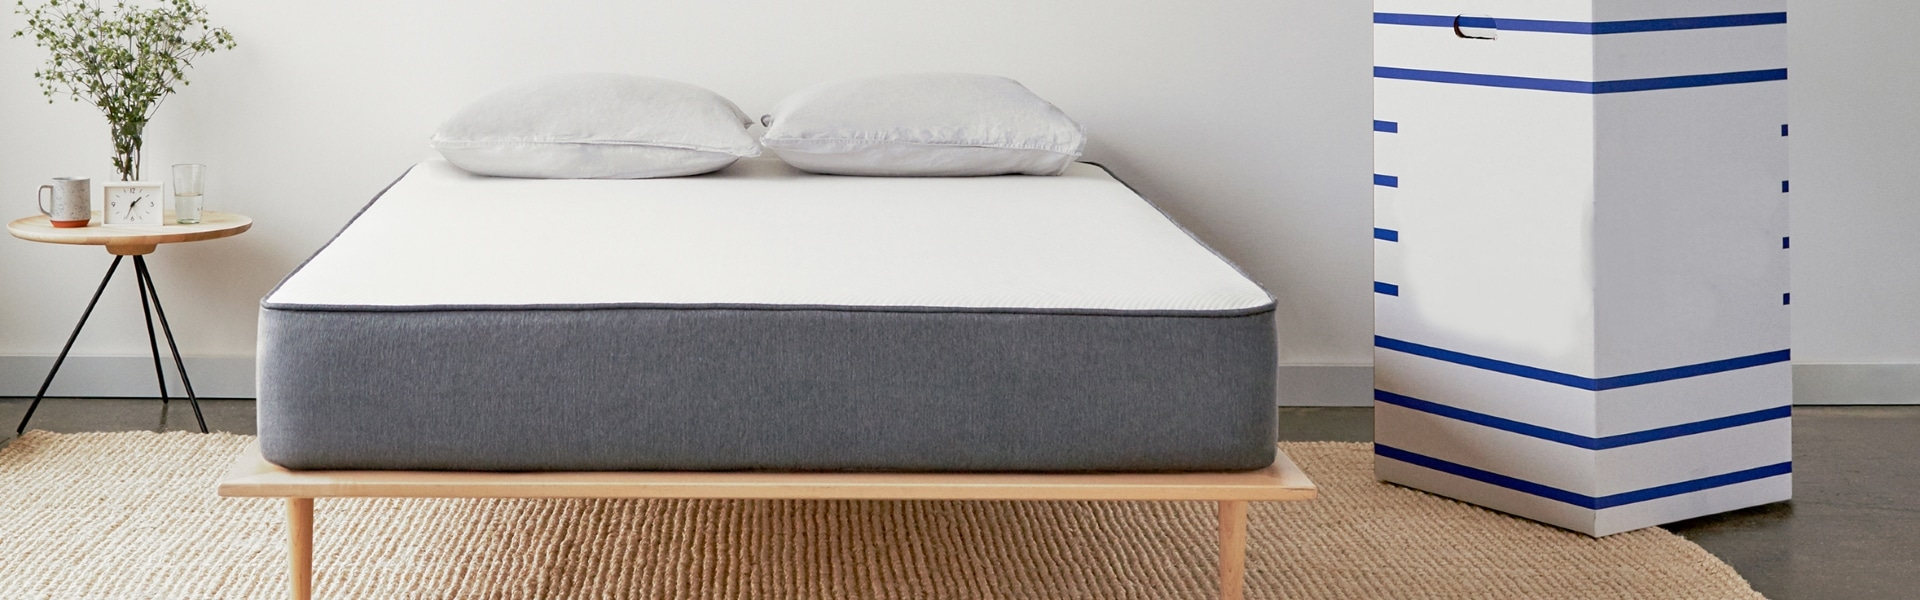 Best Mattresses in a Box Reviewed in Detail